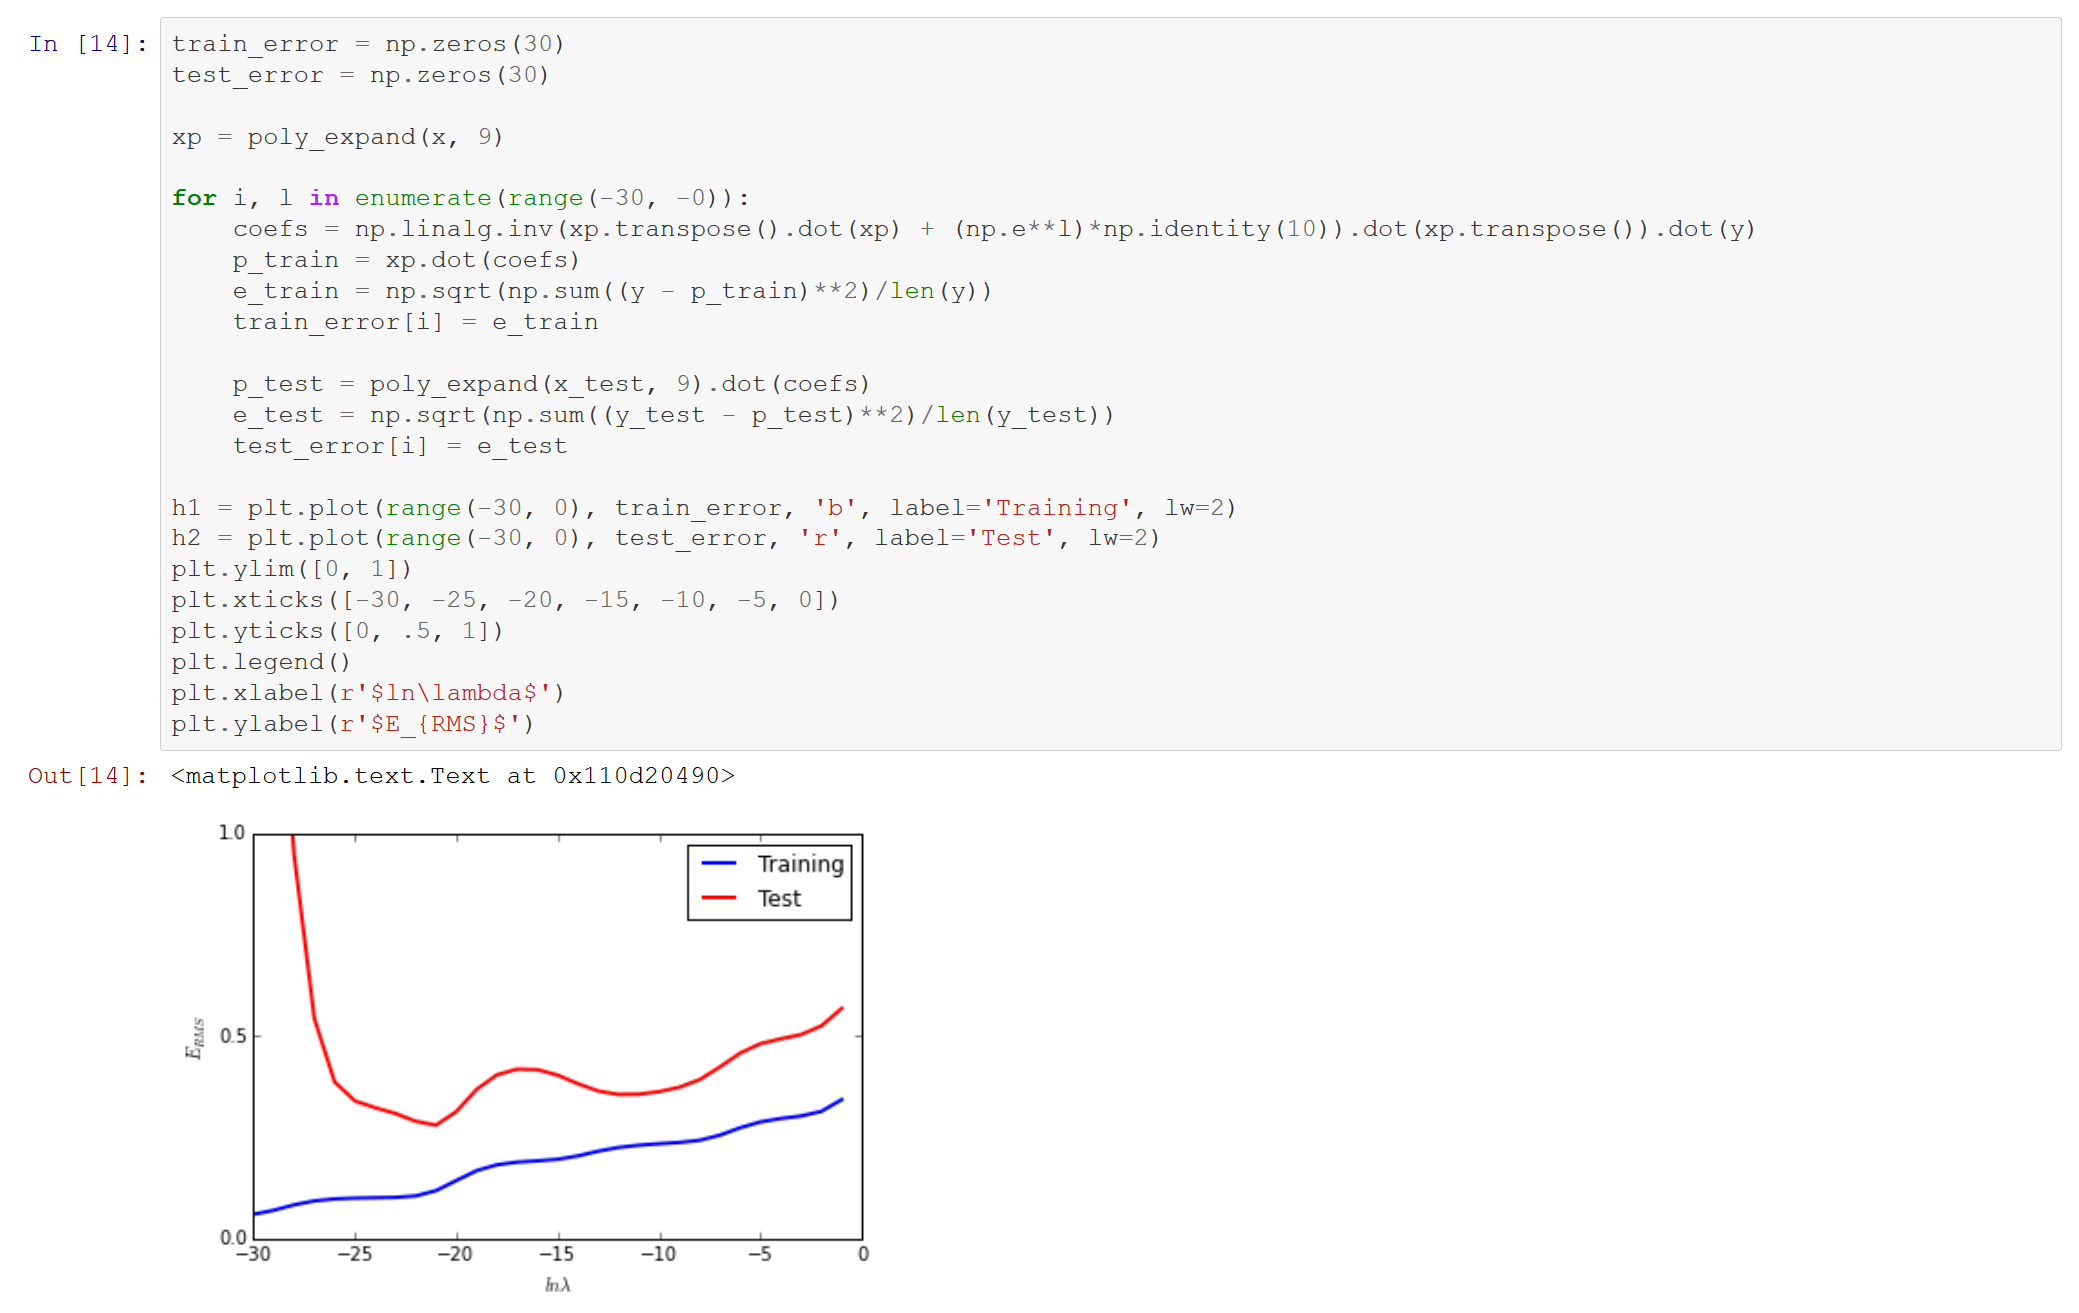 Using iPython notebooks and Pycharm together - Search